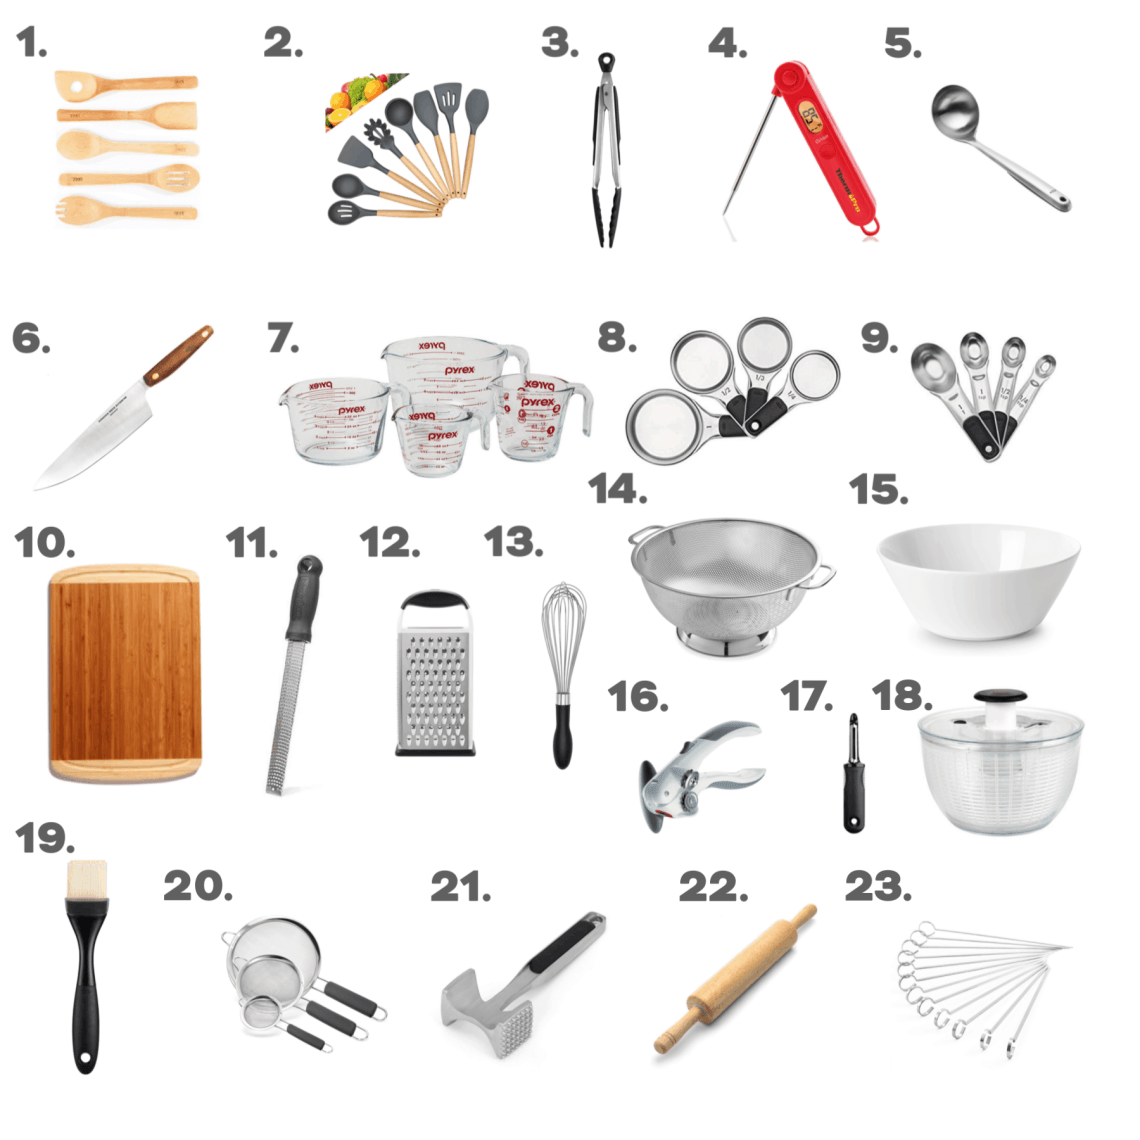 Favorite Non Toxic Kitchen Utensils And Small Gadgets Tastes Lovely